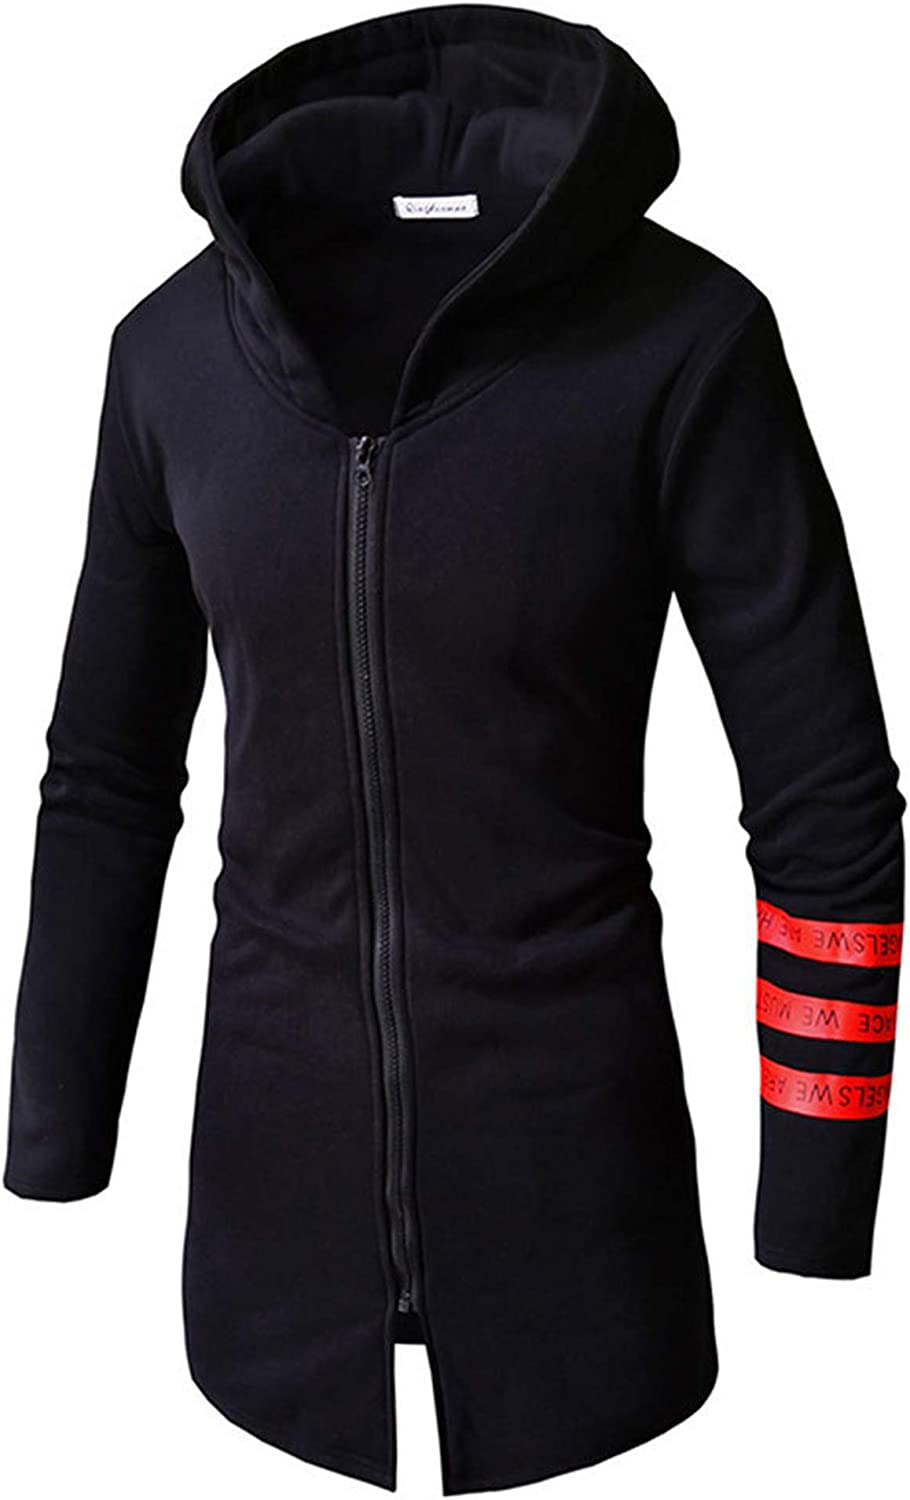 Allonly Men's Fashion Color Block Big Hood Long Sleeve Zip-up Round Bottom Hoodie Sport Workout Sweater Jacket